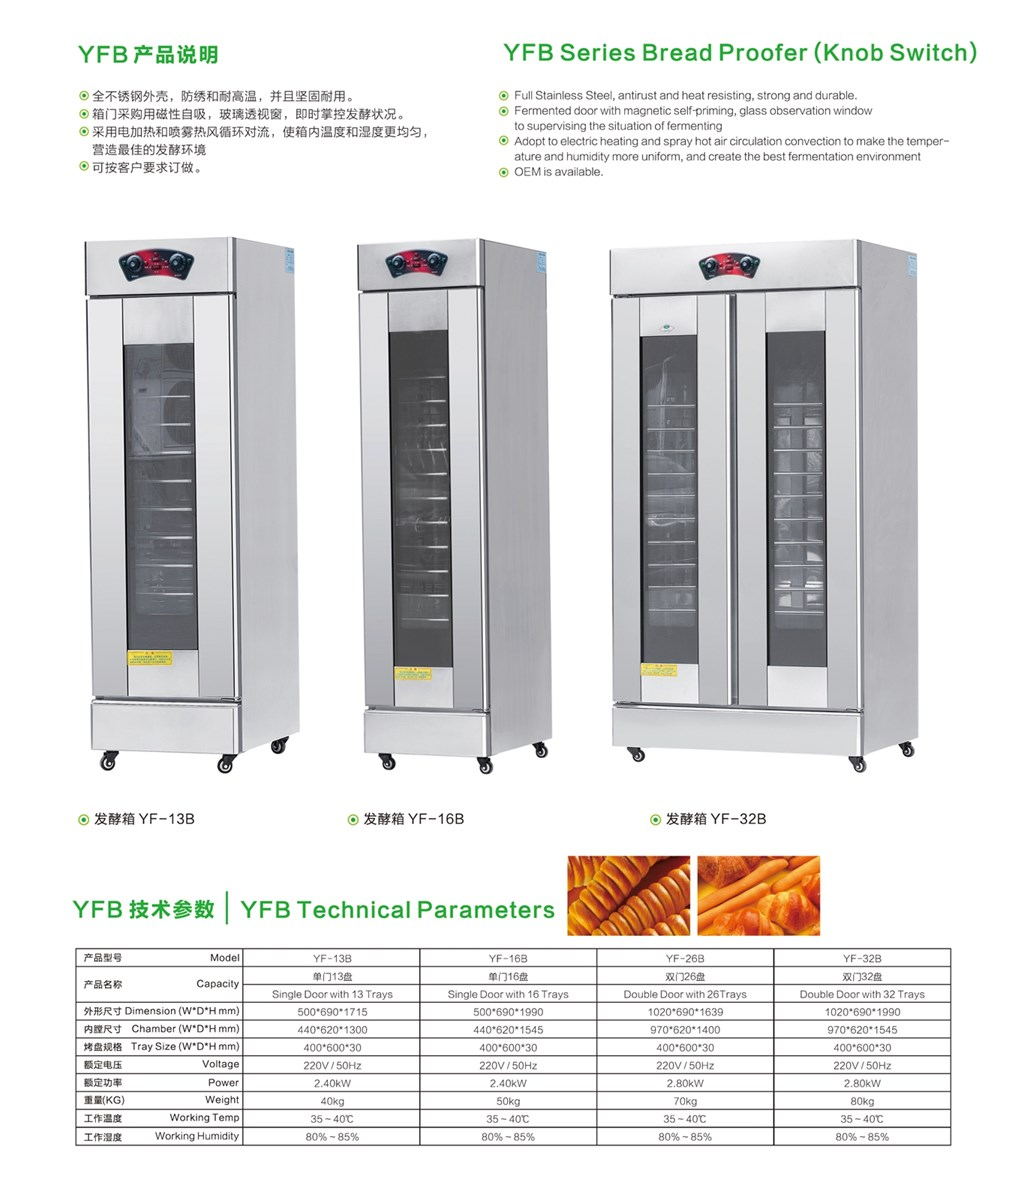 Knob Switch Type Bread Proofer YF-26B from China